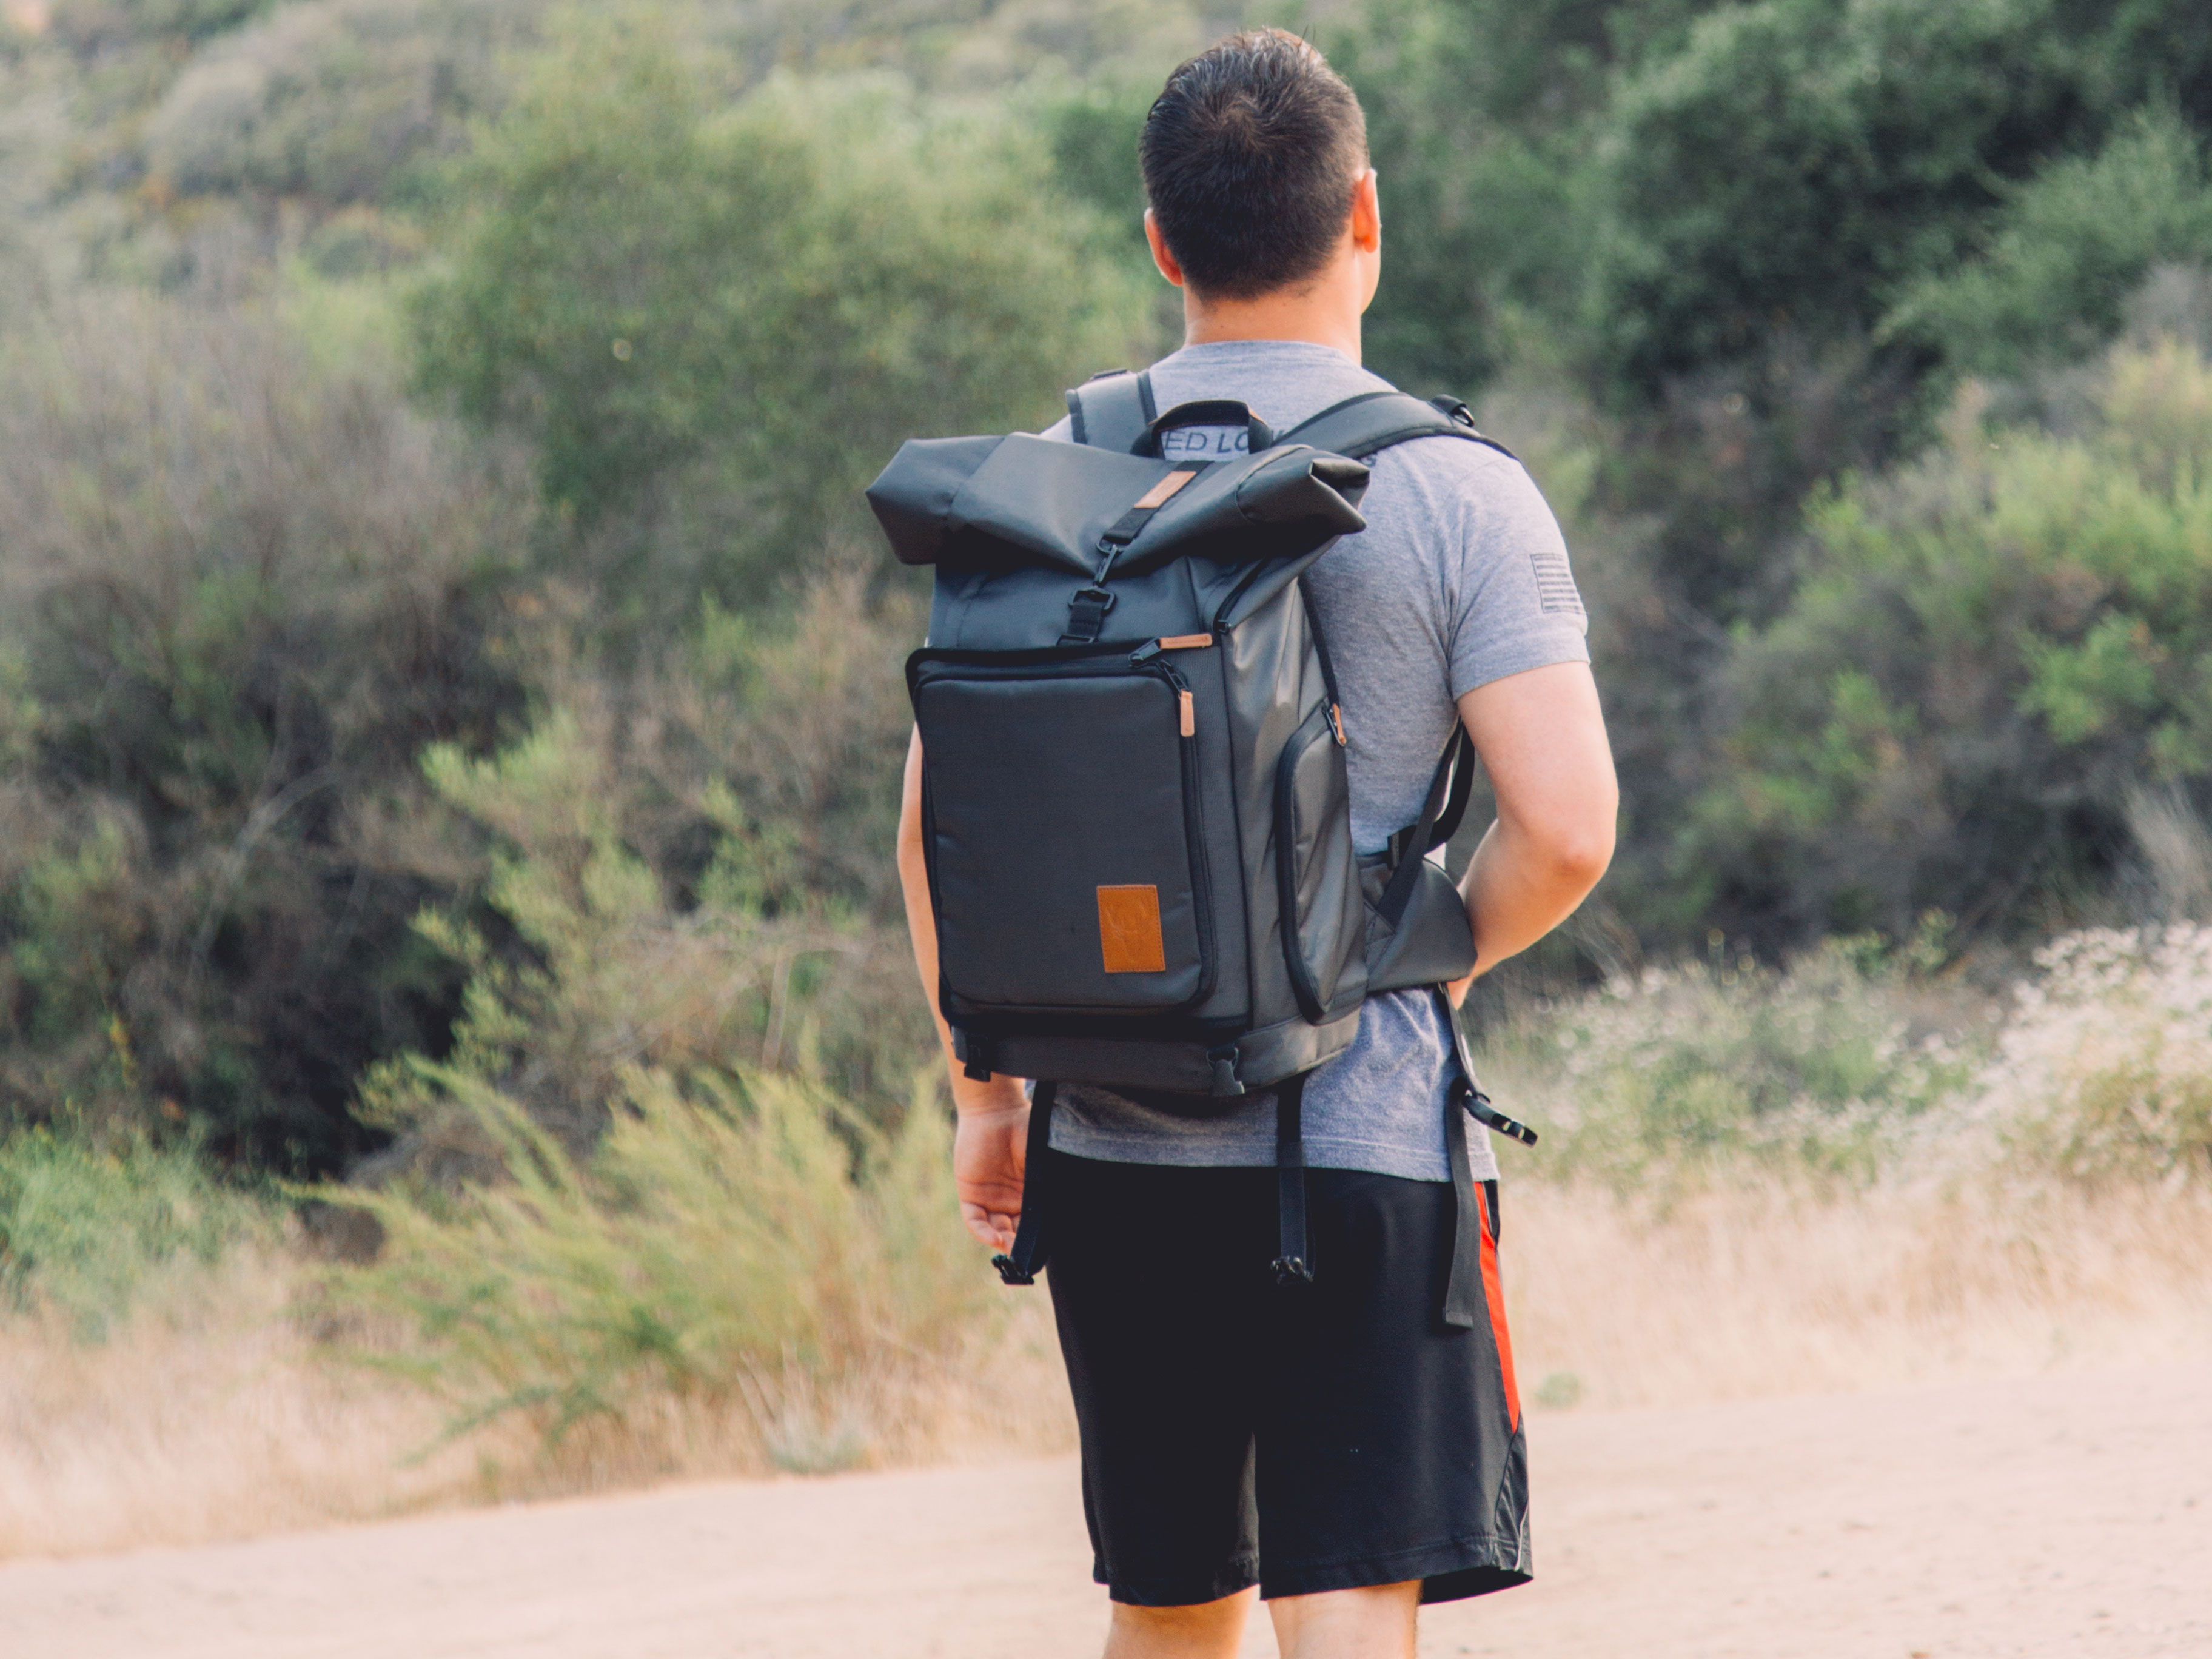 7be102b6fb97 Brevite launches two new Incognito camera backpacks  Digital Photography  Review